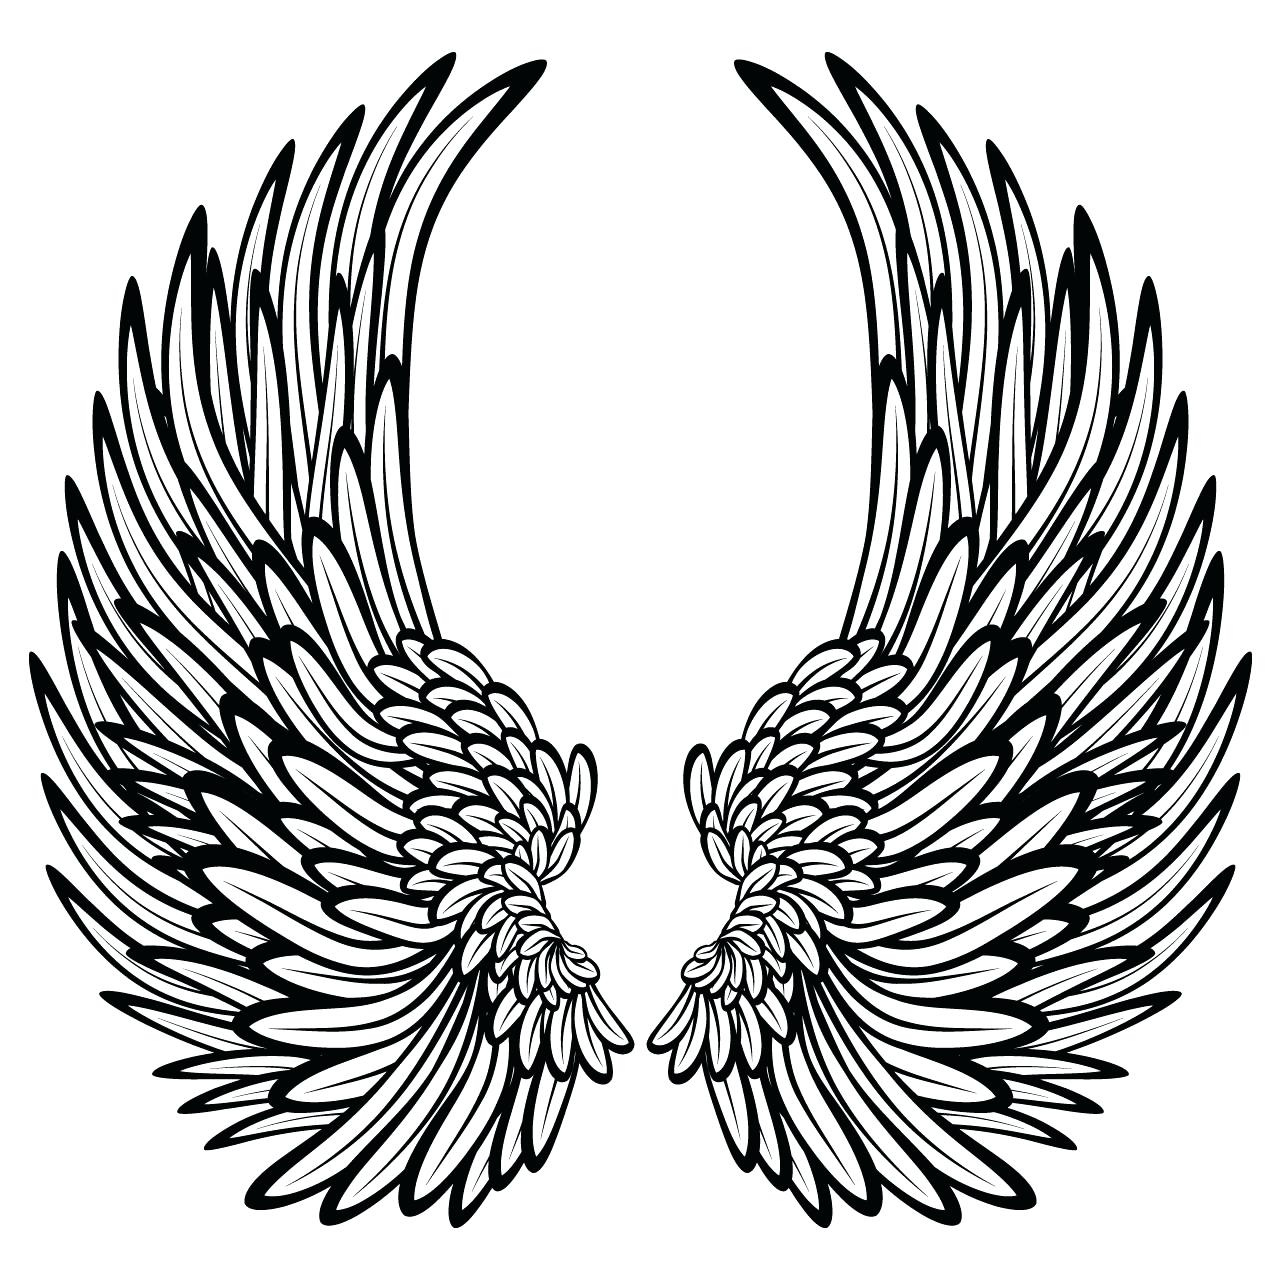 1280x1280 Heart With Ribbon Drawings Coloring Pages Of Hearts Angel Wings